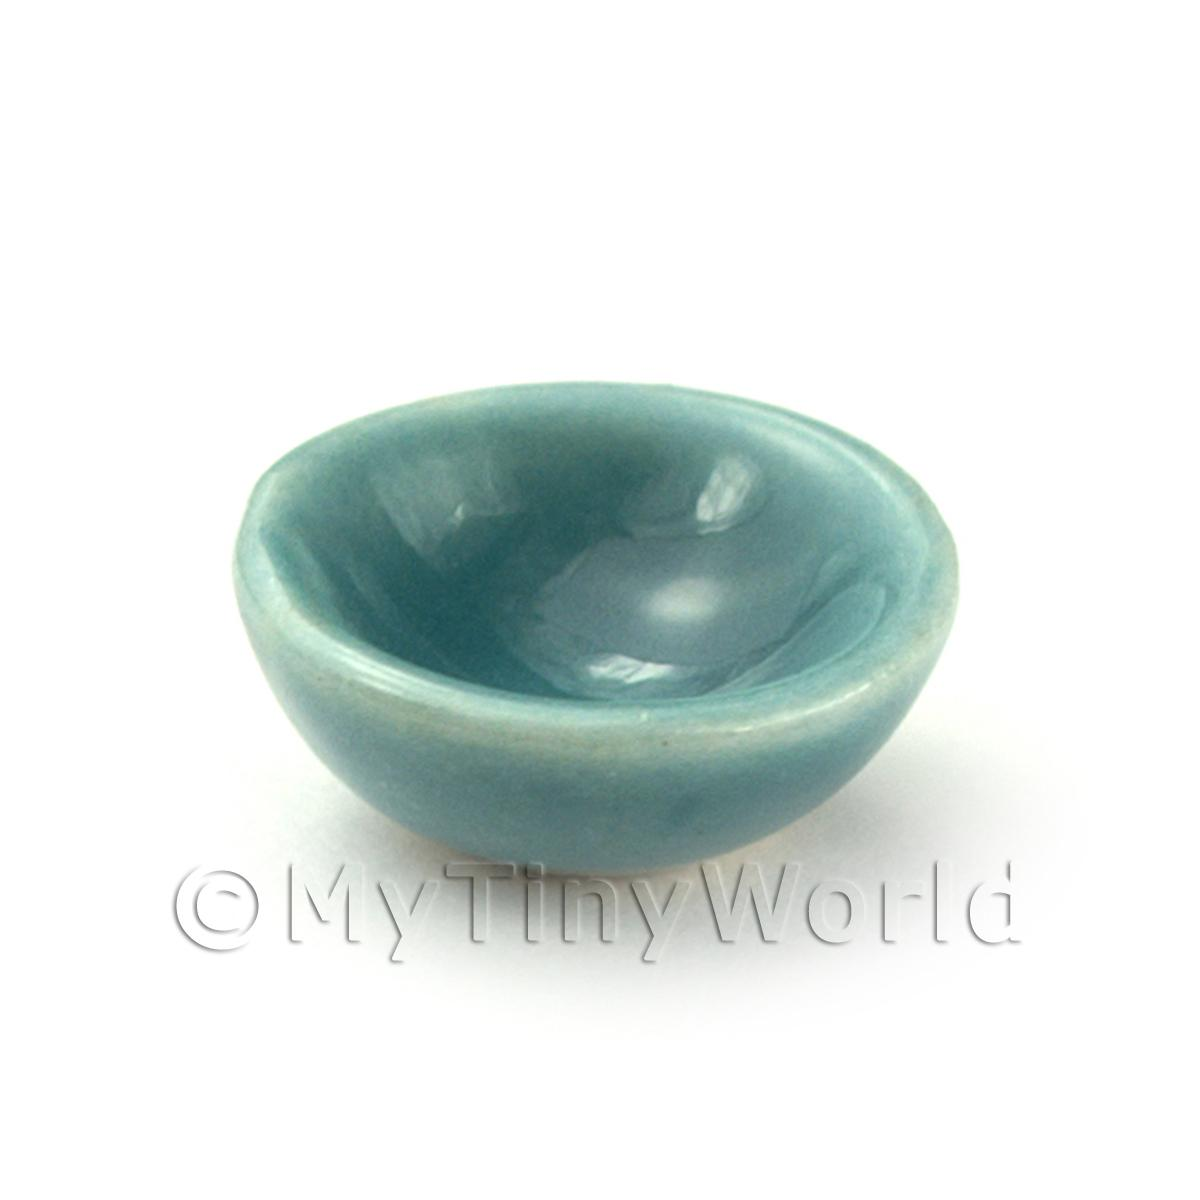 Dolls House Miniature Aquamarine 12mm Ceramic Bowls